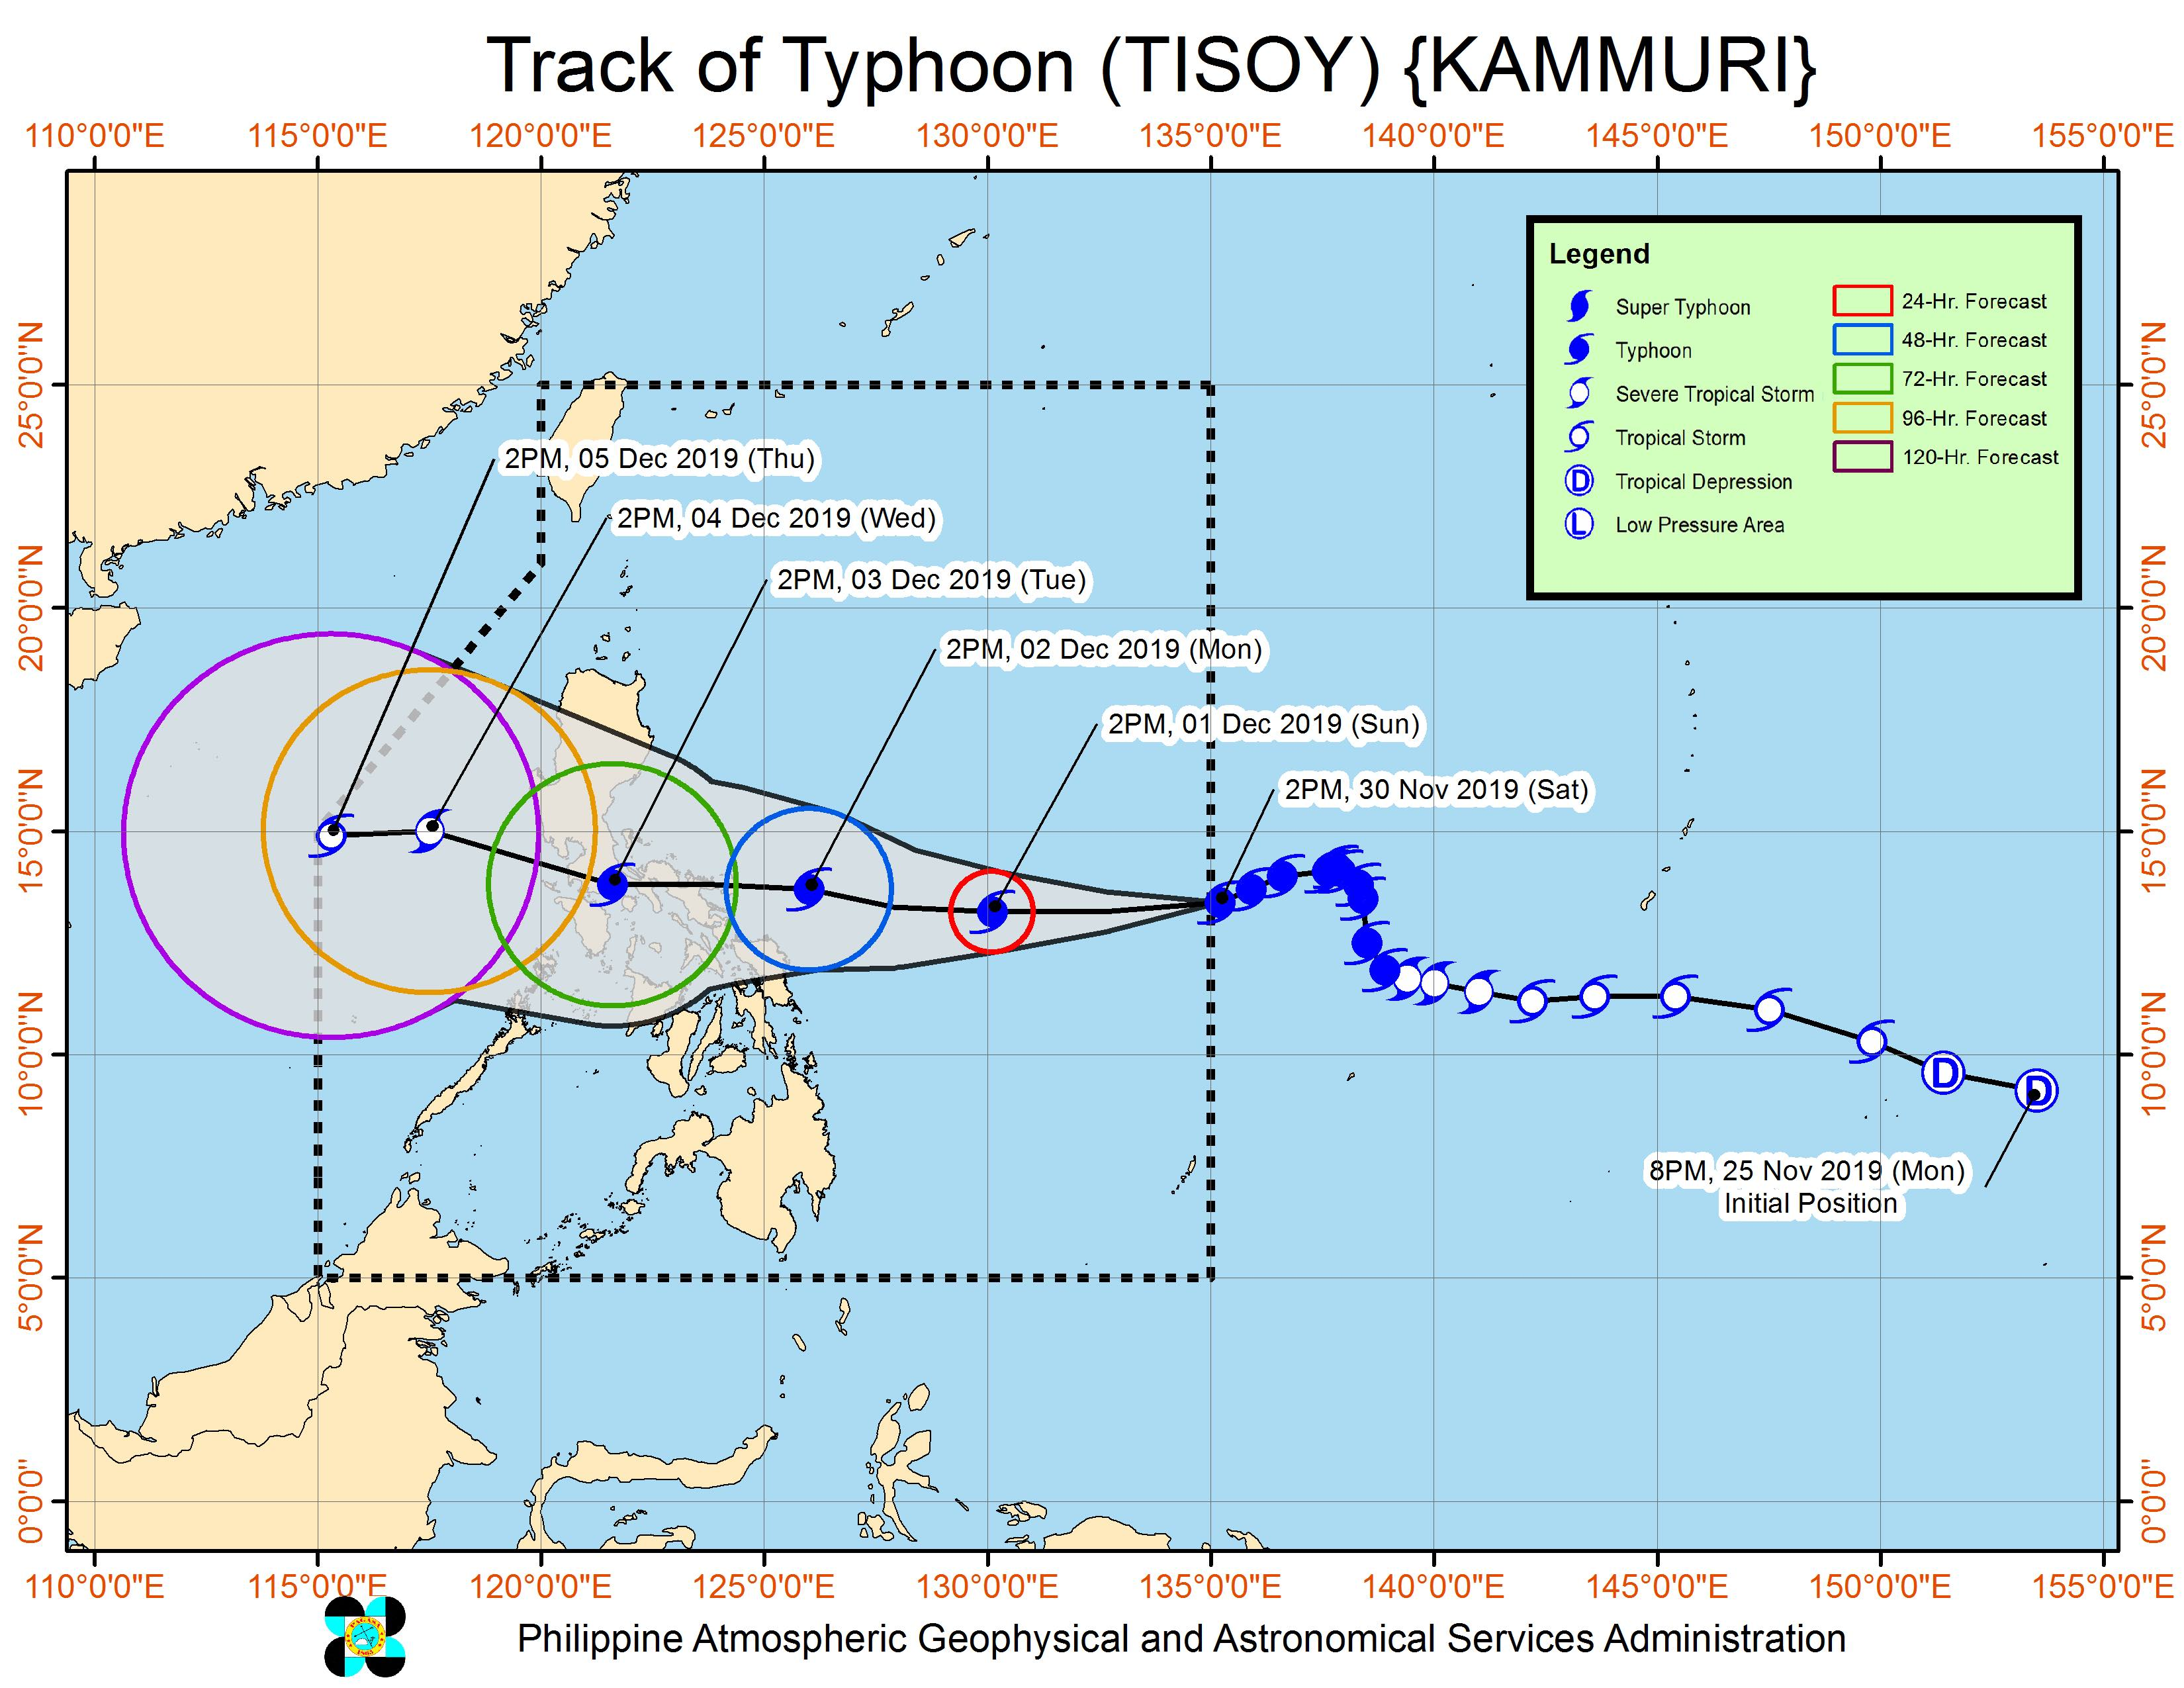 Forecast track of Typhoon Tisoy (Kammuri) as of November 30, 2019, 5 pm. Image from PAGASA